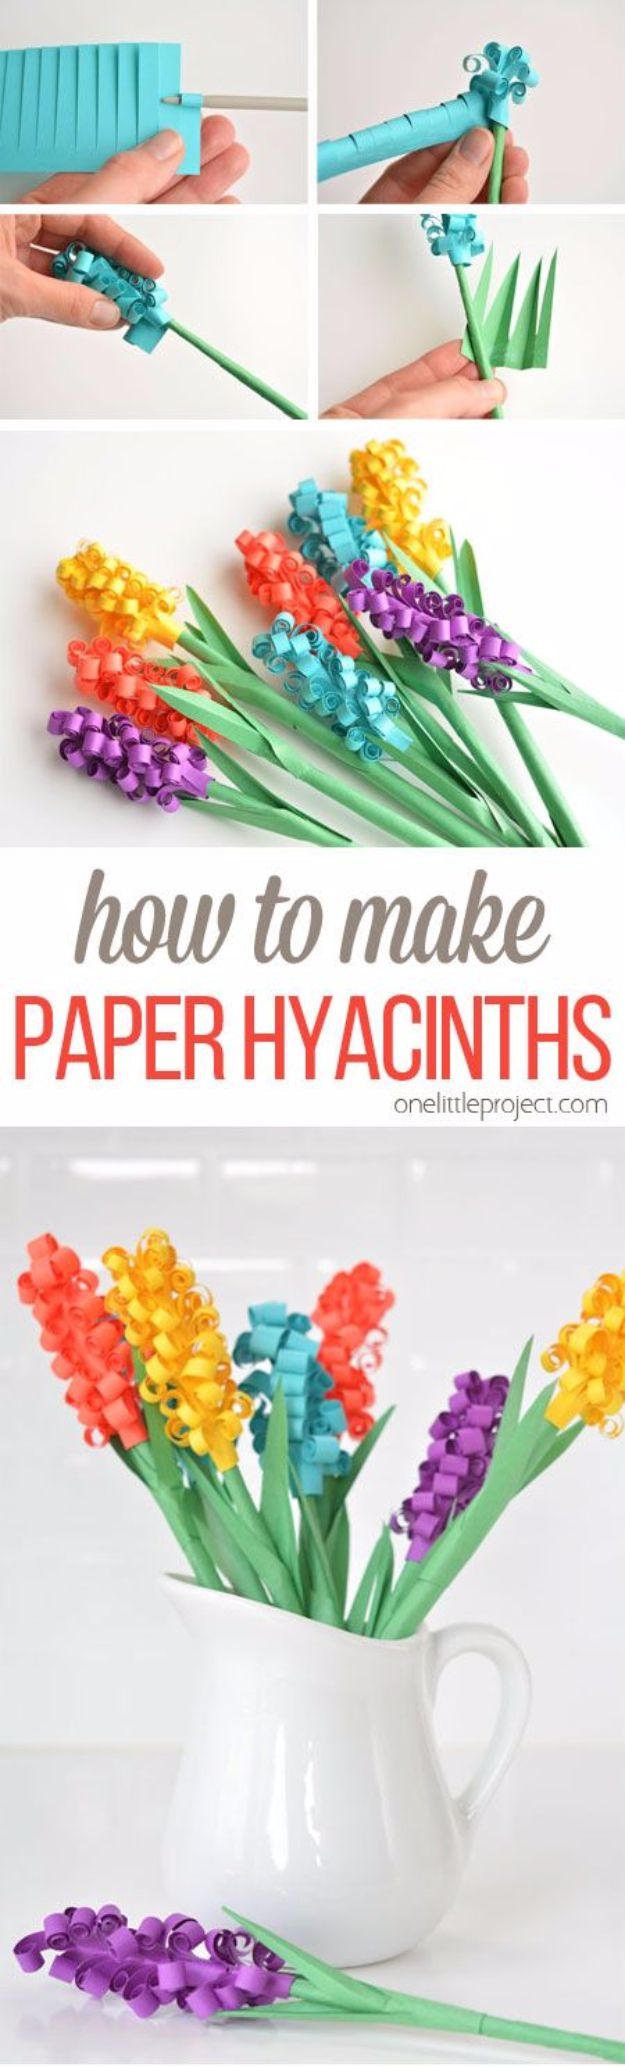 DIY Paper Flowers - Paper Hyacinth Flowers - How To Make A Paper Flower - Large Wedding Backdrop for Wall Decor - Easy Tissue Paper Flower Tutorial for Kids - Giant Projects for Photo Backdrops - Daisy, Roses, Bouquets, Centerpieces - Cricut Template and Step by Step Tutorial